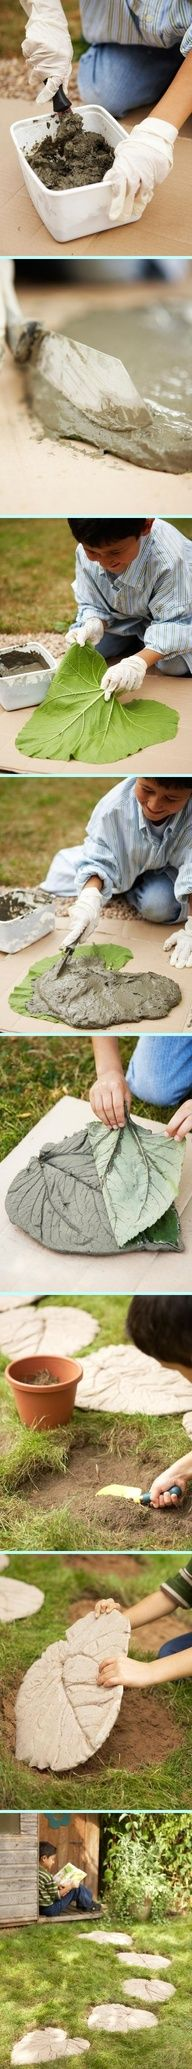 leaf stepping stones-cool idea